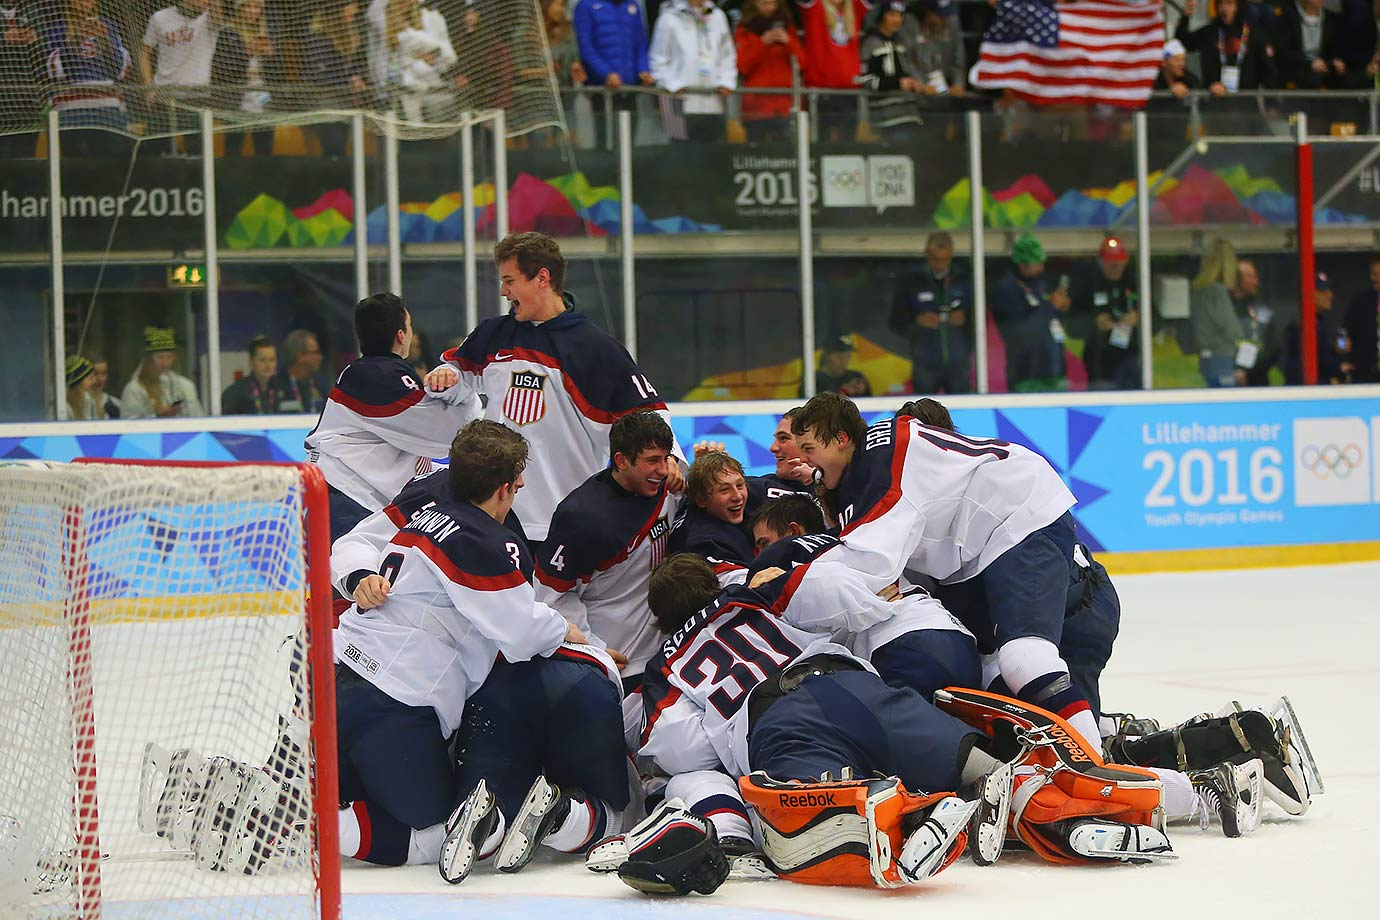 Team USA celebrates after winning 5-2 over Team Canada in the Ice Hockey men's final at the Kristins Hall on Feb. 21, 2016 during the Winter Youth Olympic Games in Lillehammer, Norway.